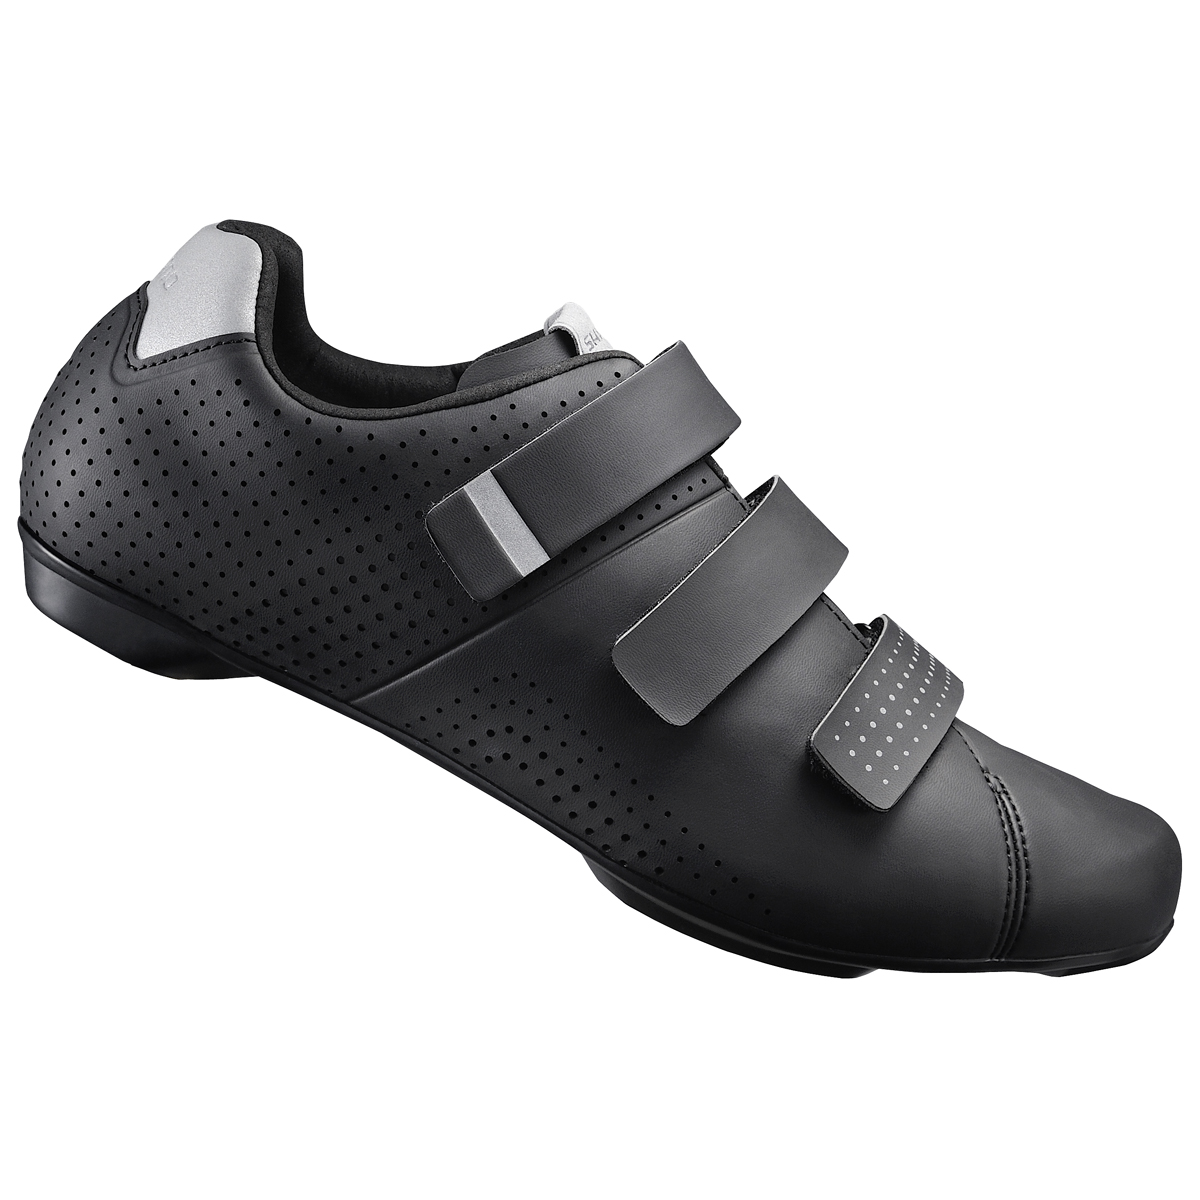 SMN Chaussures Route RT500 Noir